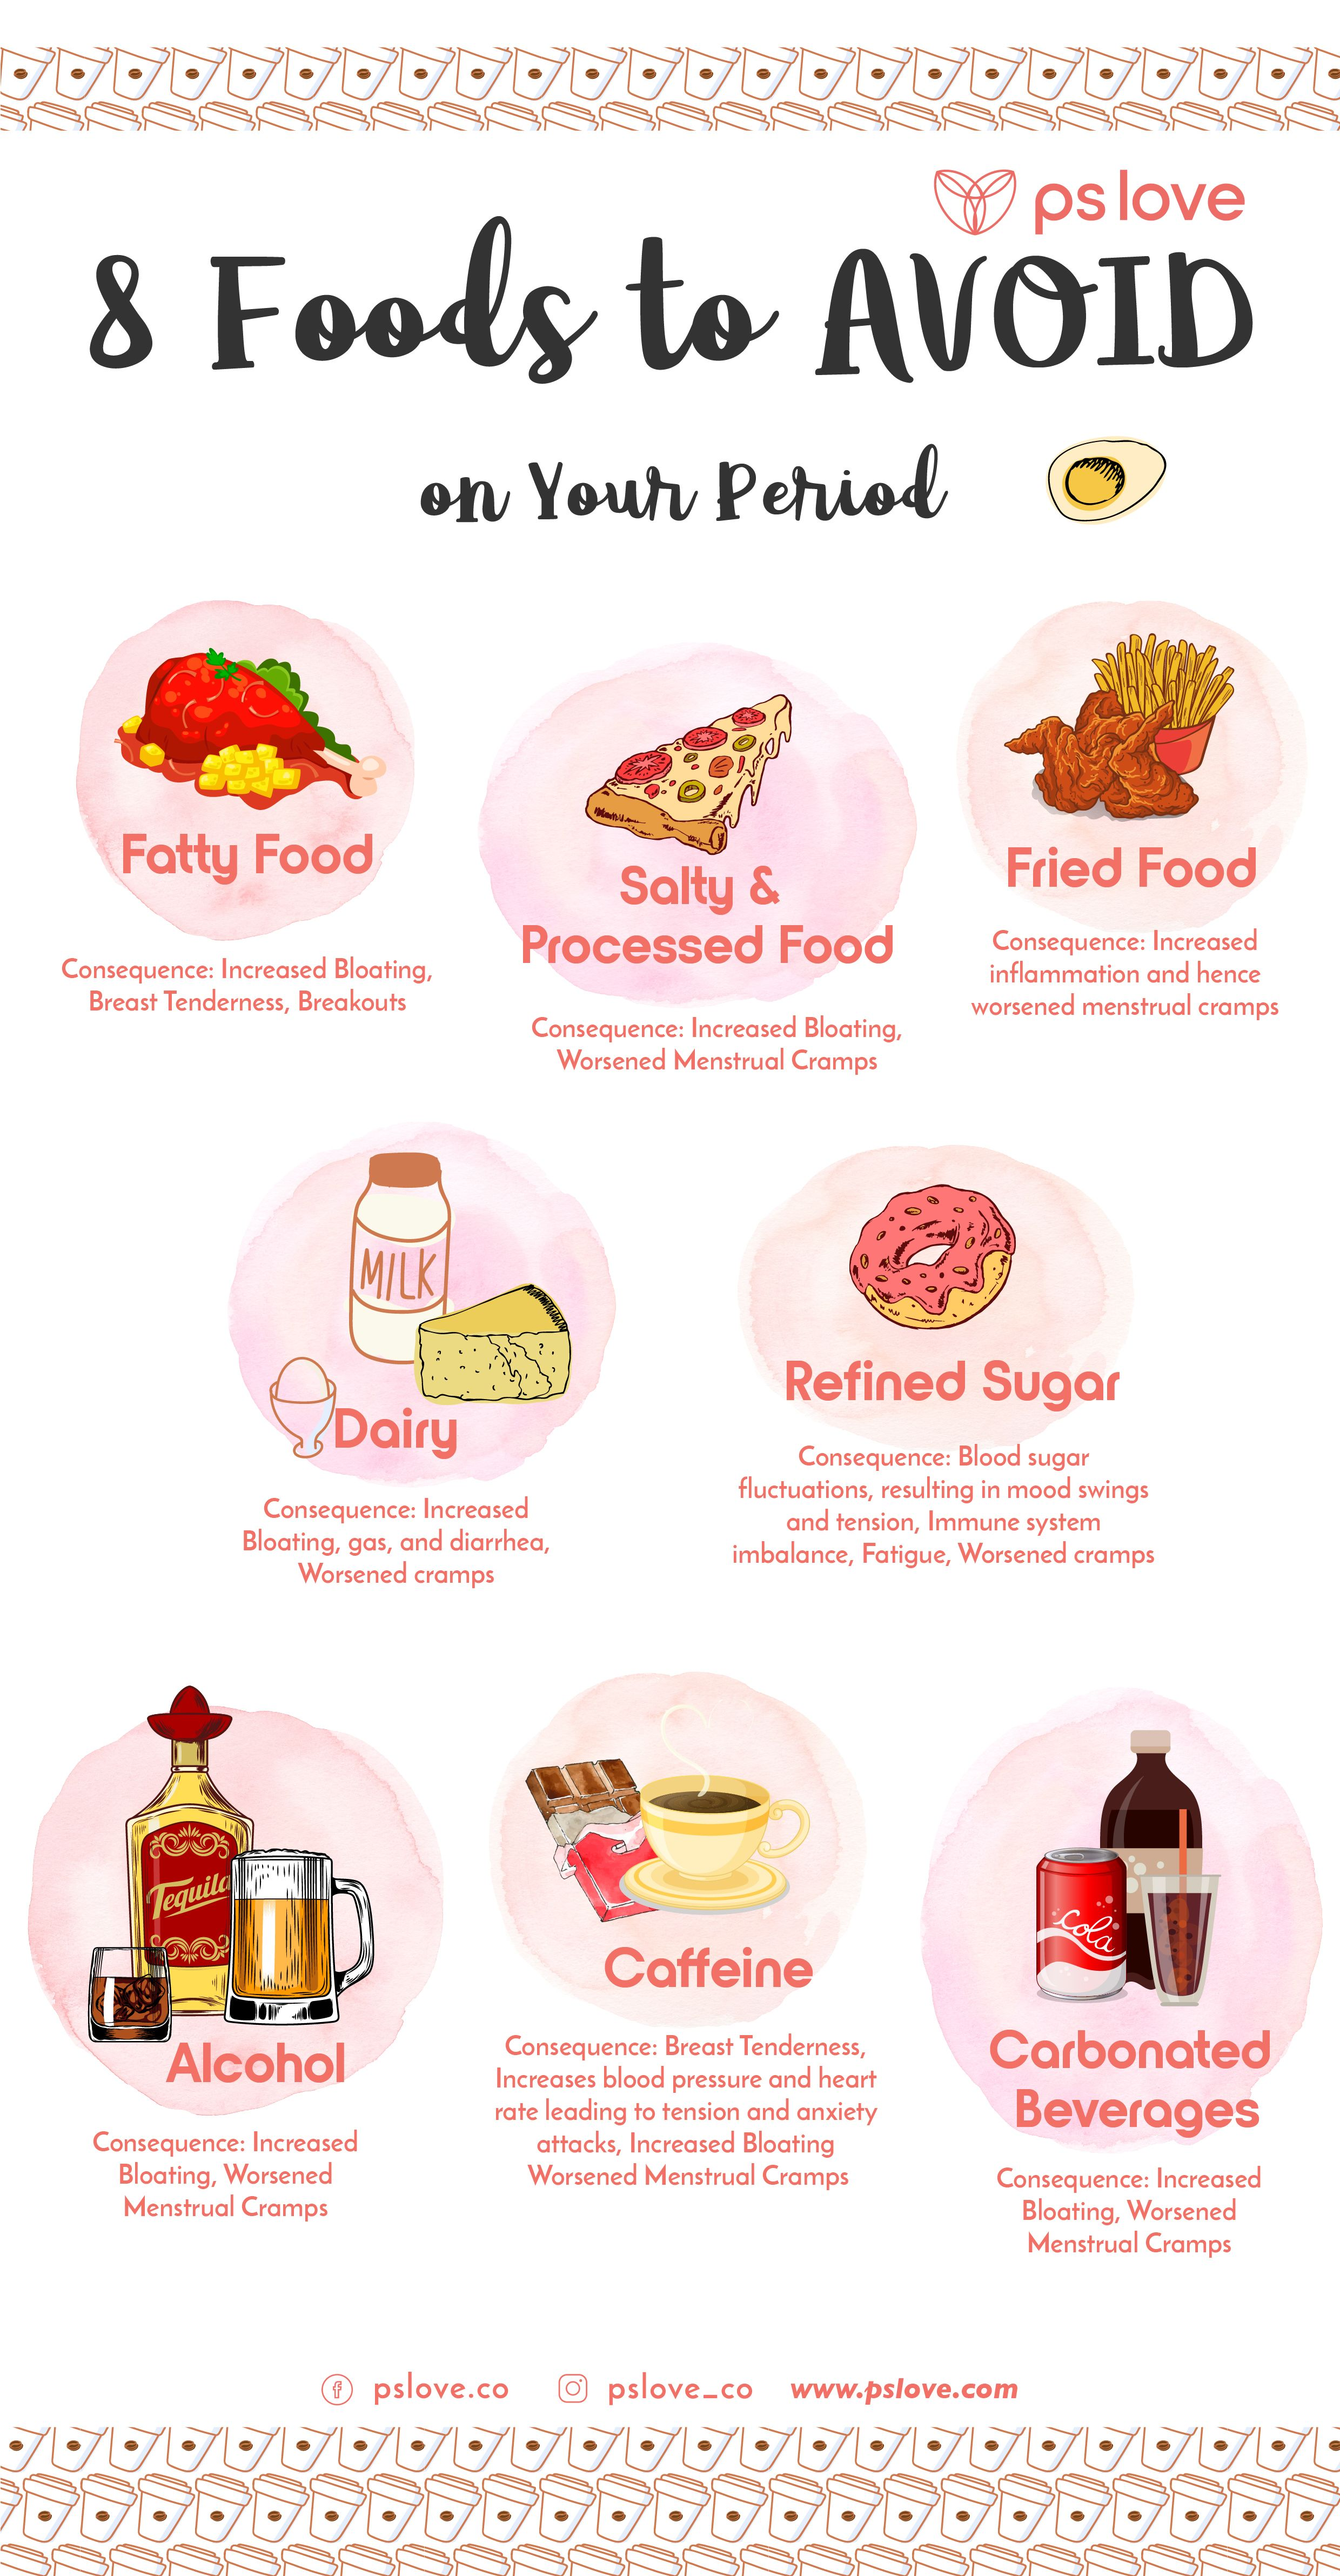 8 foods to avoid on your period to prevent unwanted